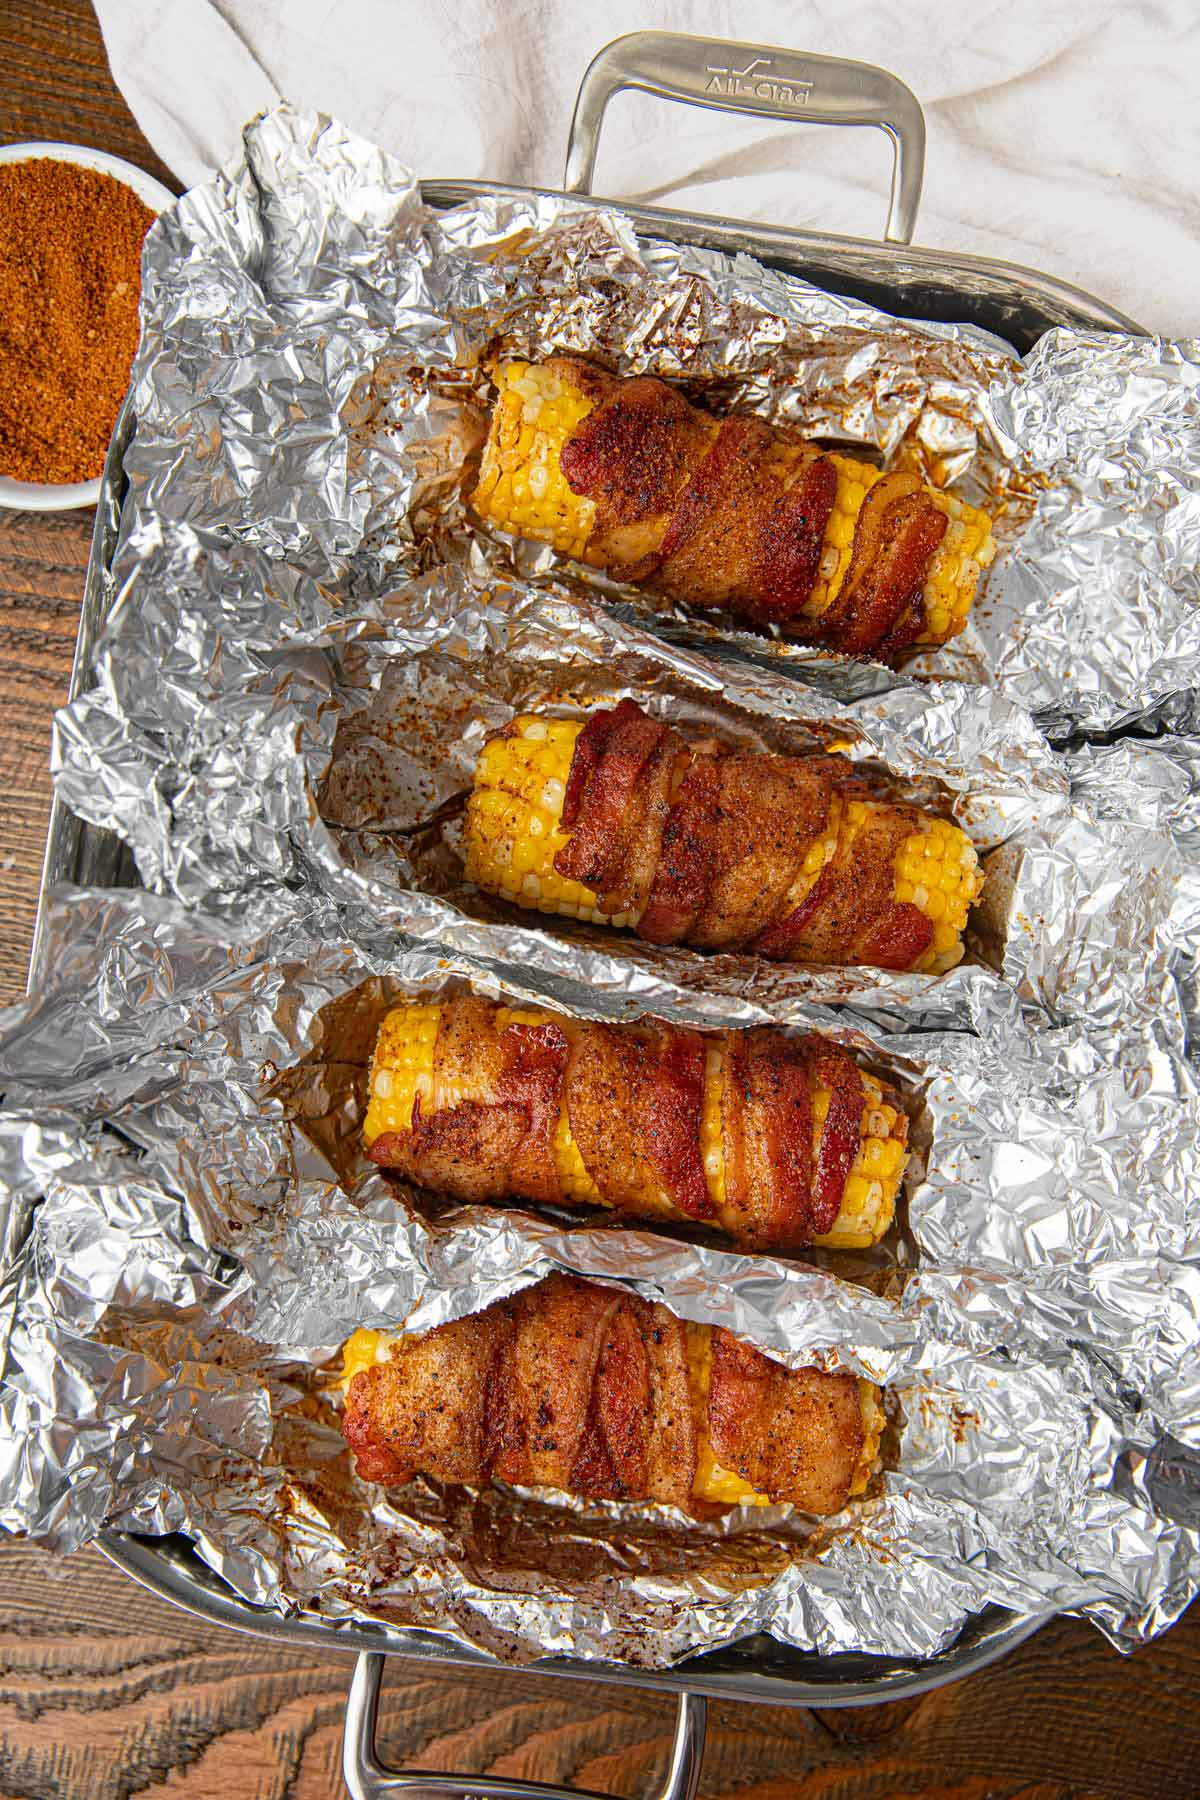 BBQ Bacon Oven Roasted Corn